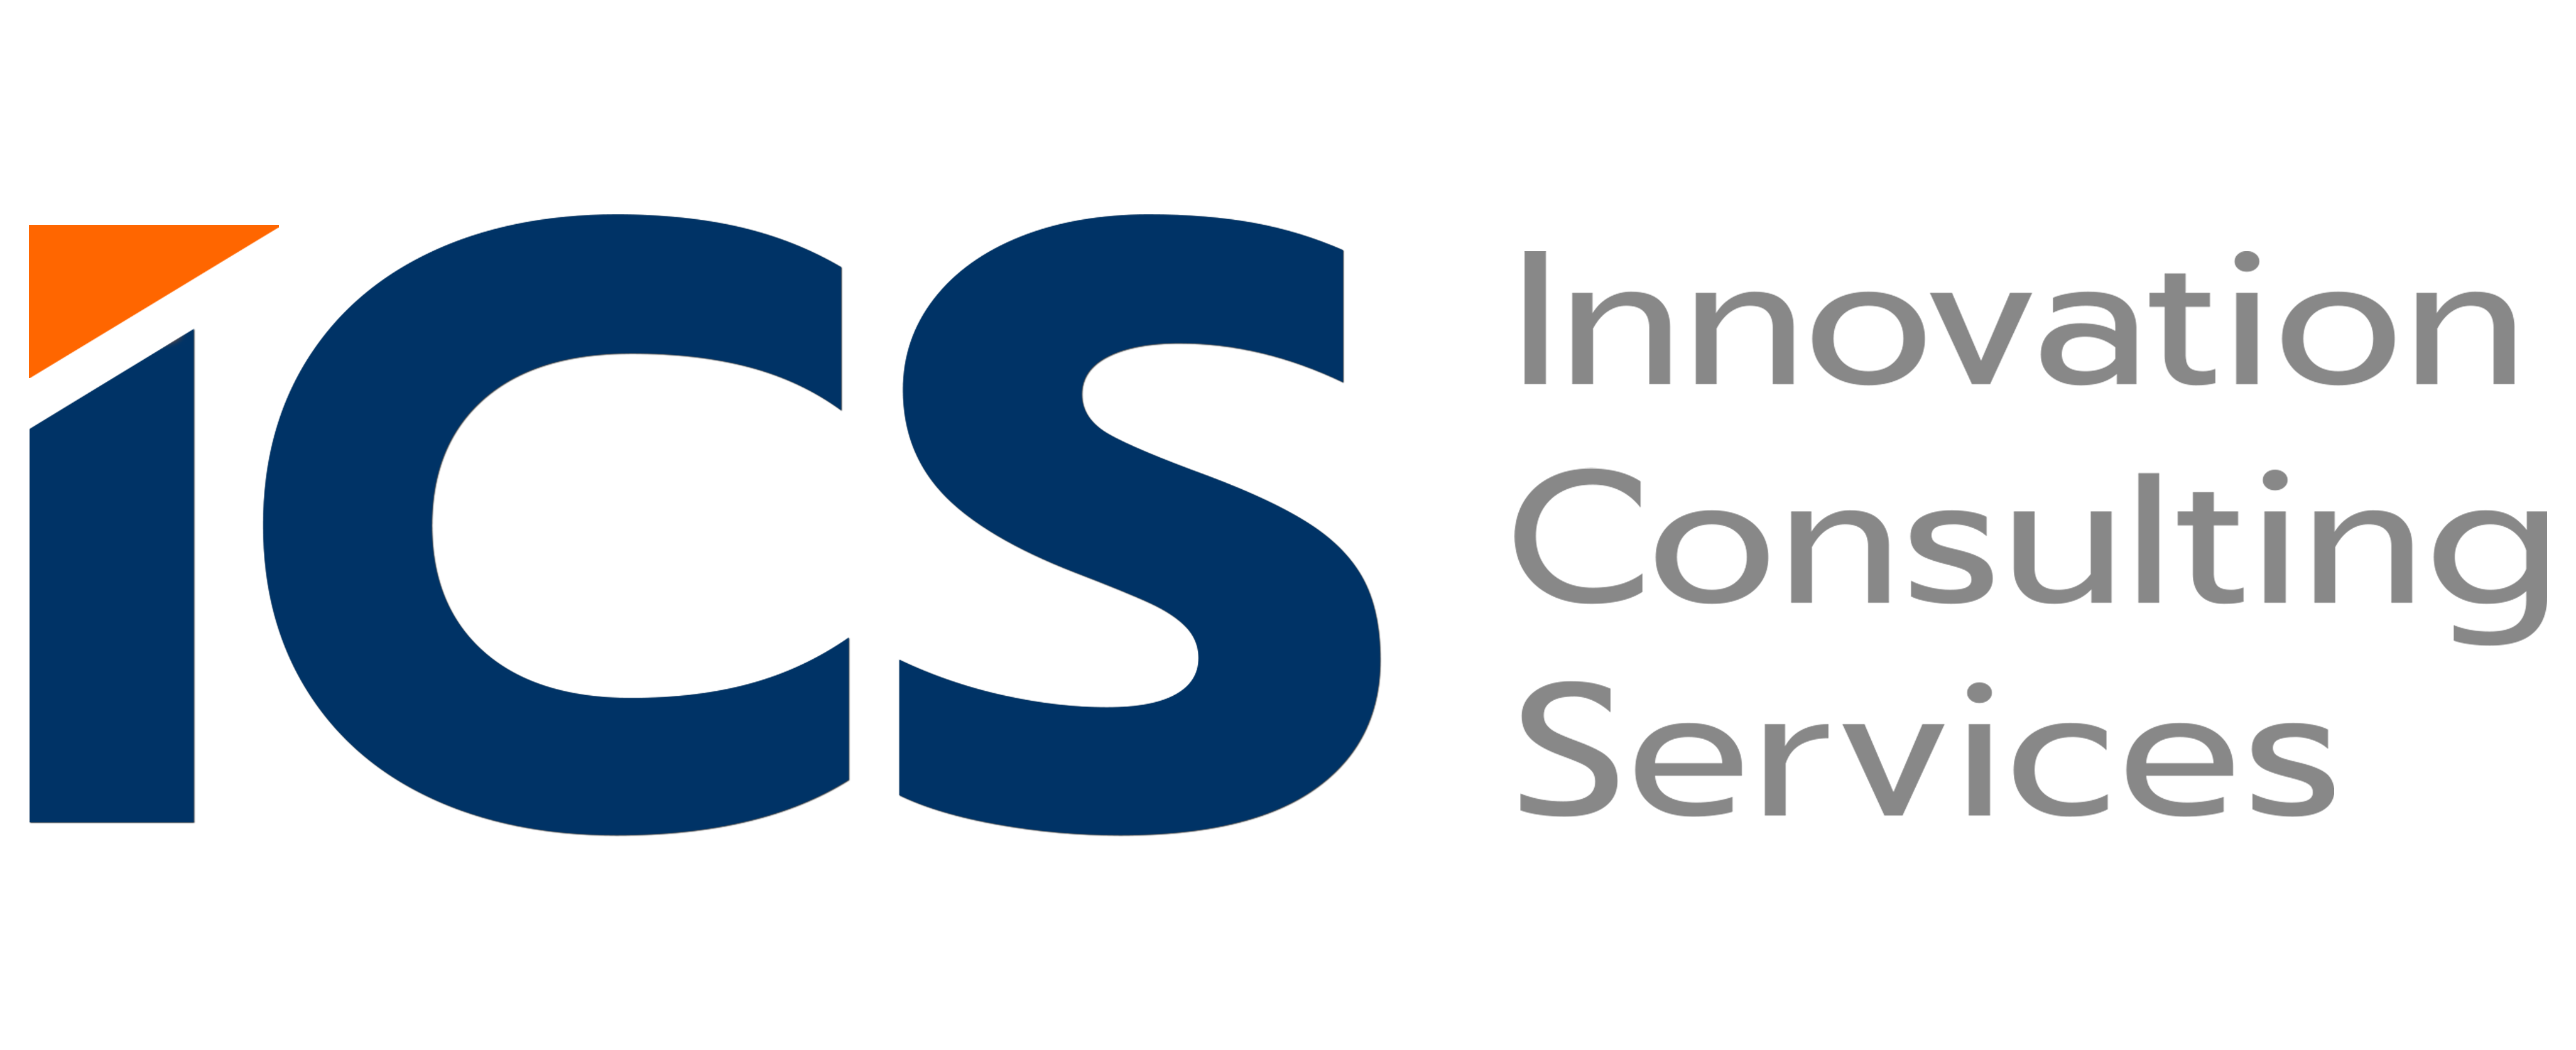 innovation consulting services logo